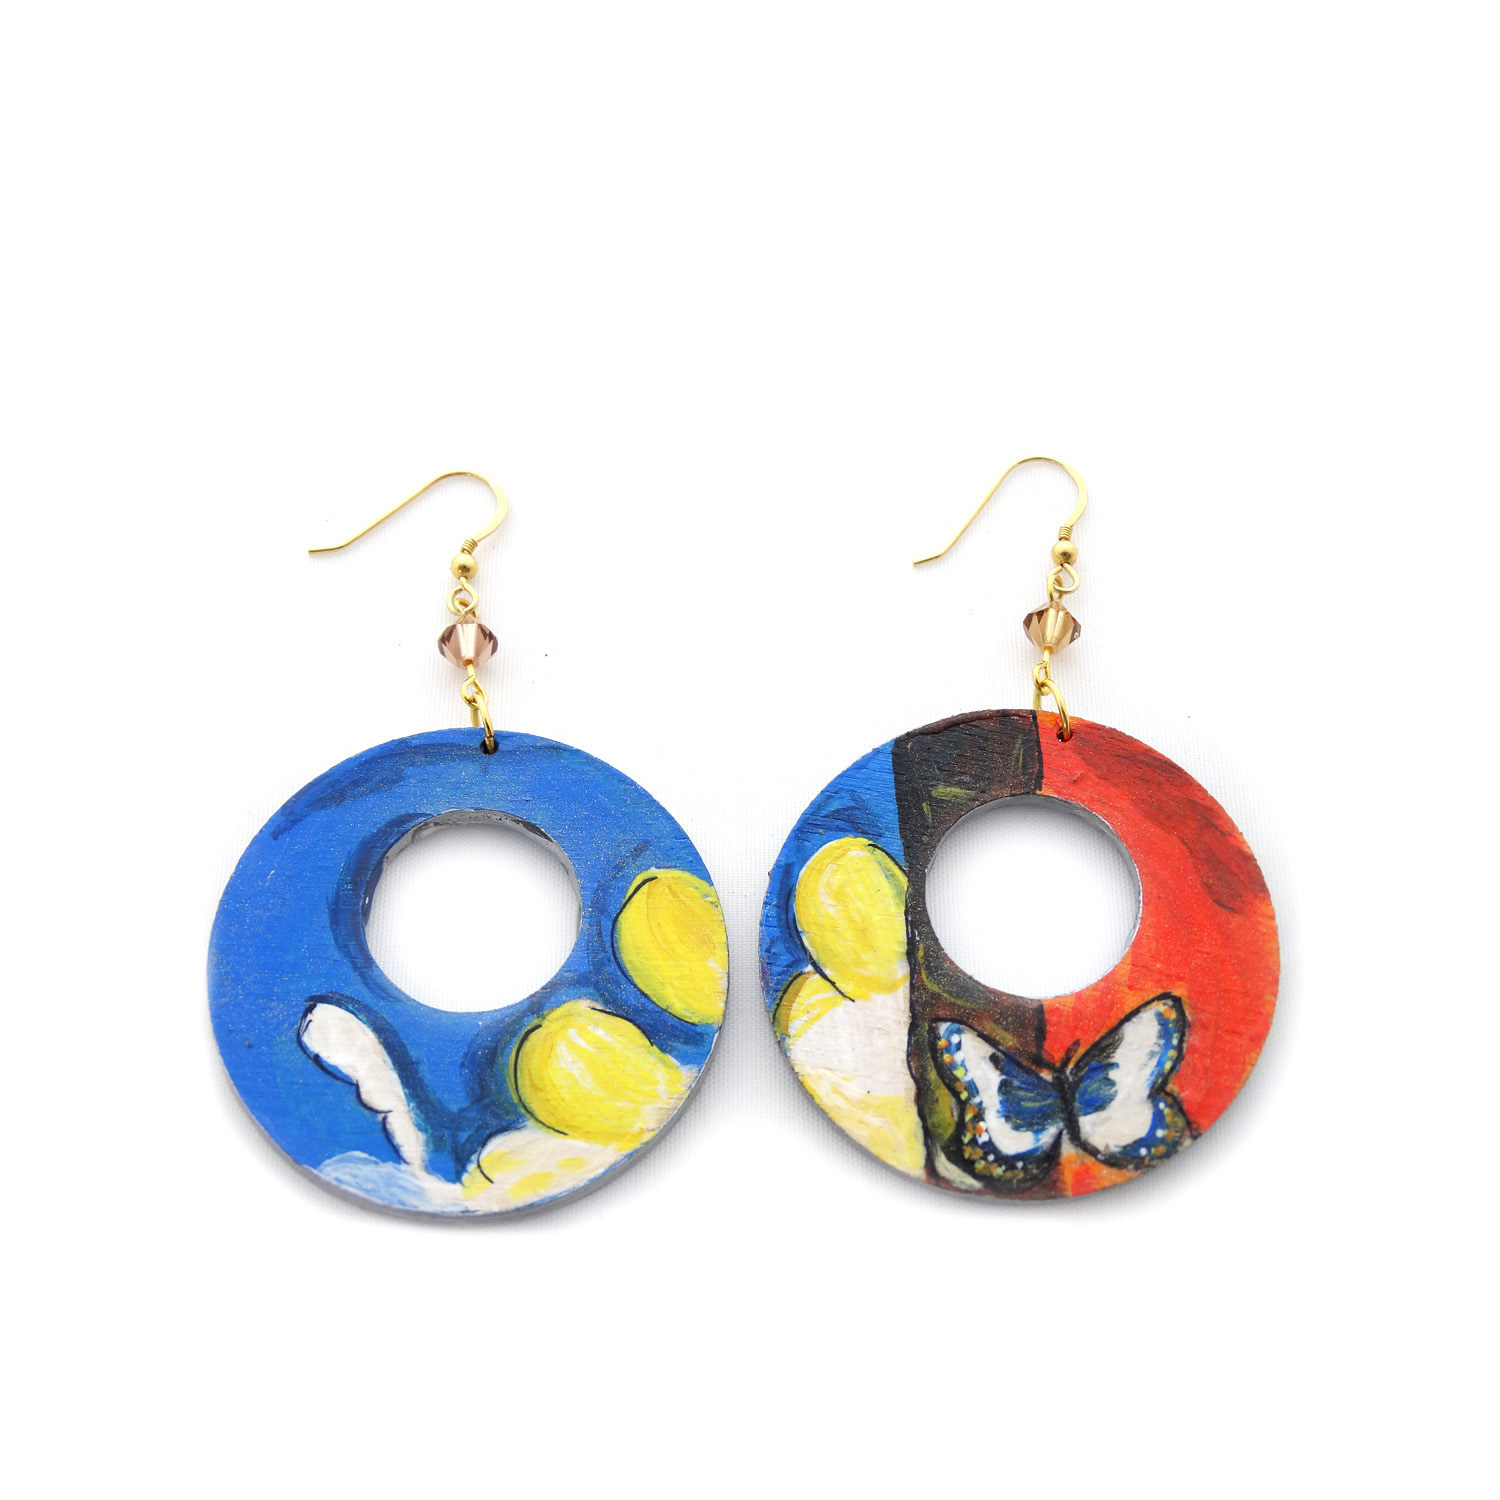 Hand-painted earrings - Landscape with Butterflies by Dali